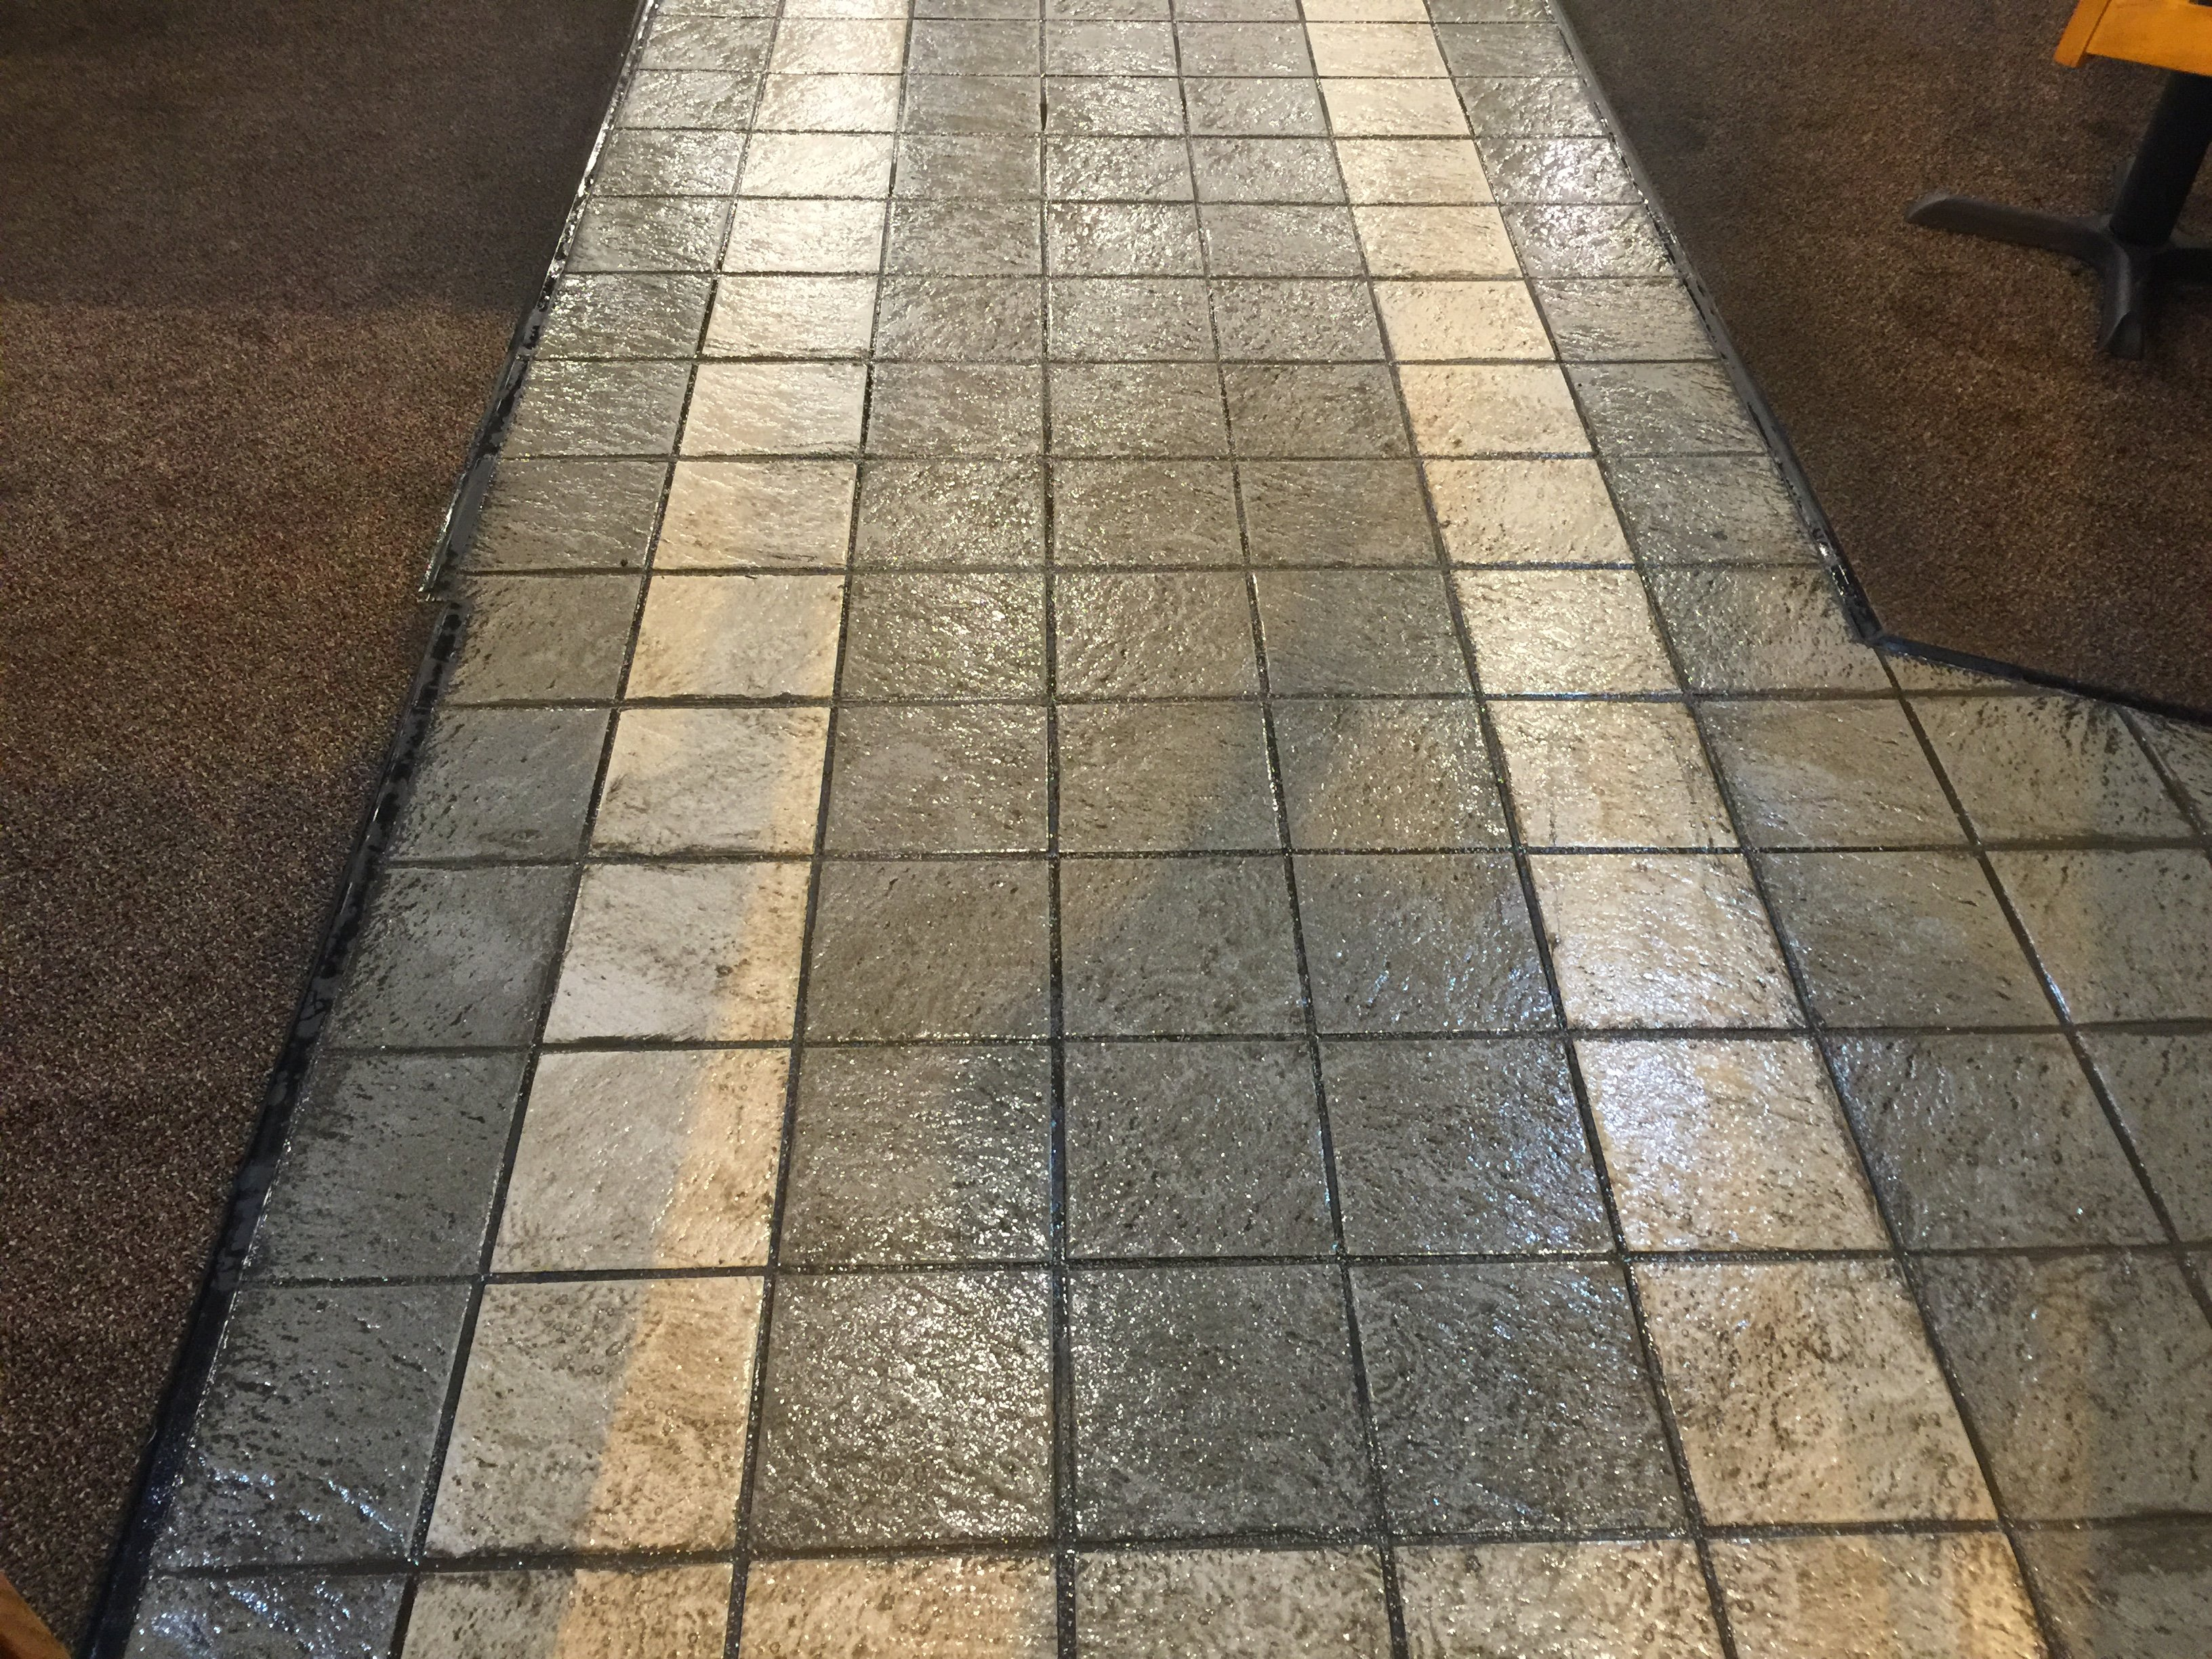 Commercial Grout Cleaning Before | Pristine Flooring Restoration